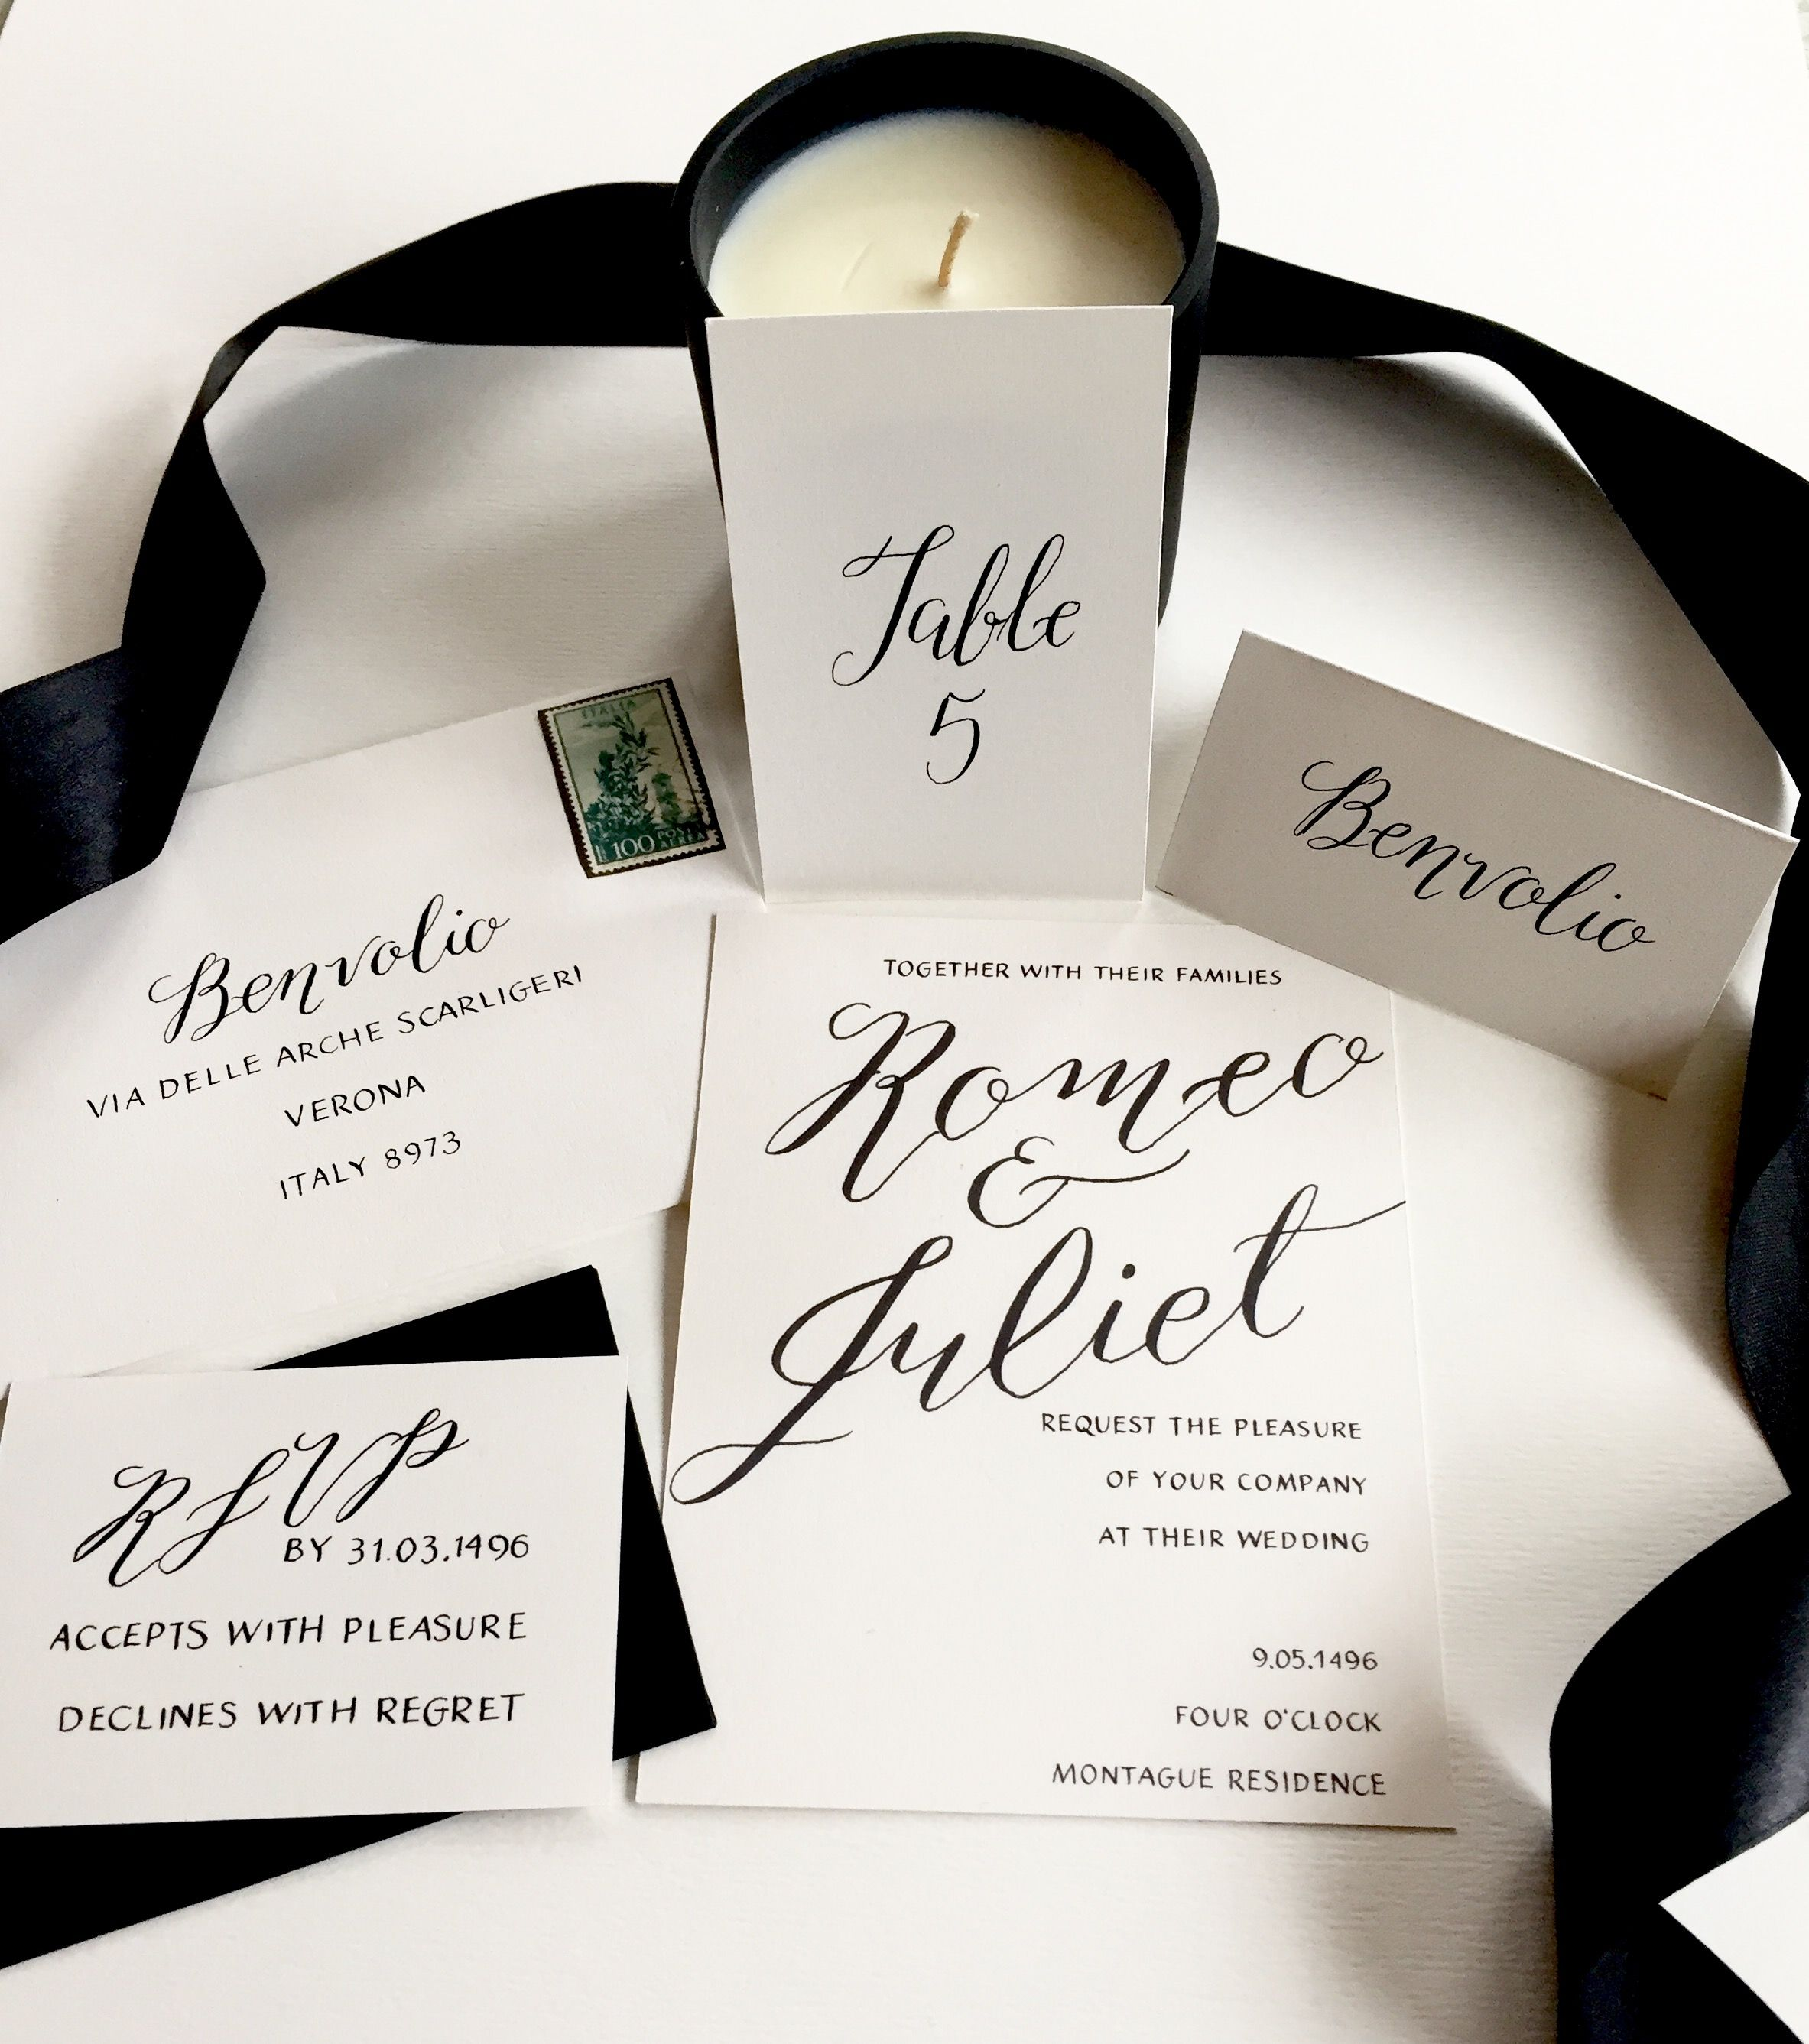 Classic Black and White elegance with the ultimate